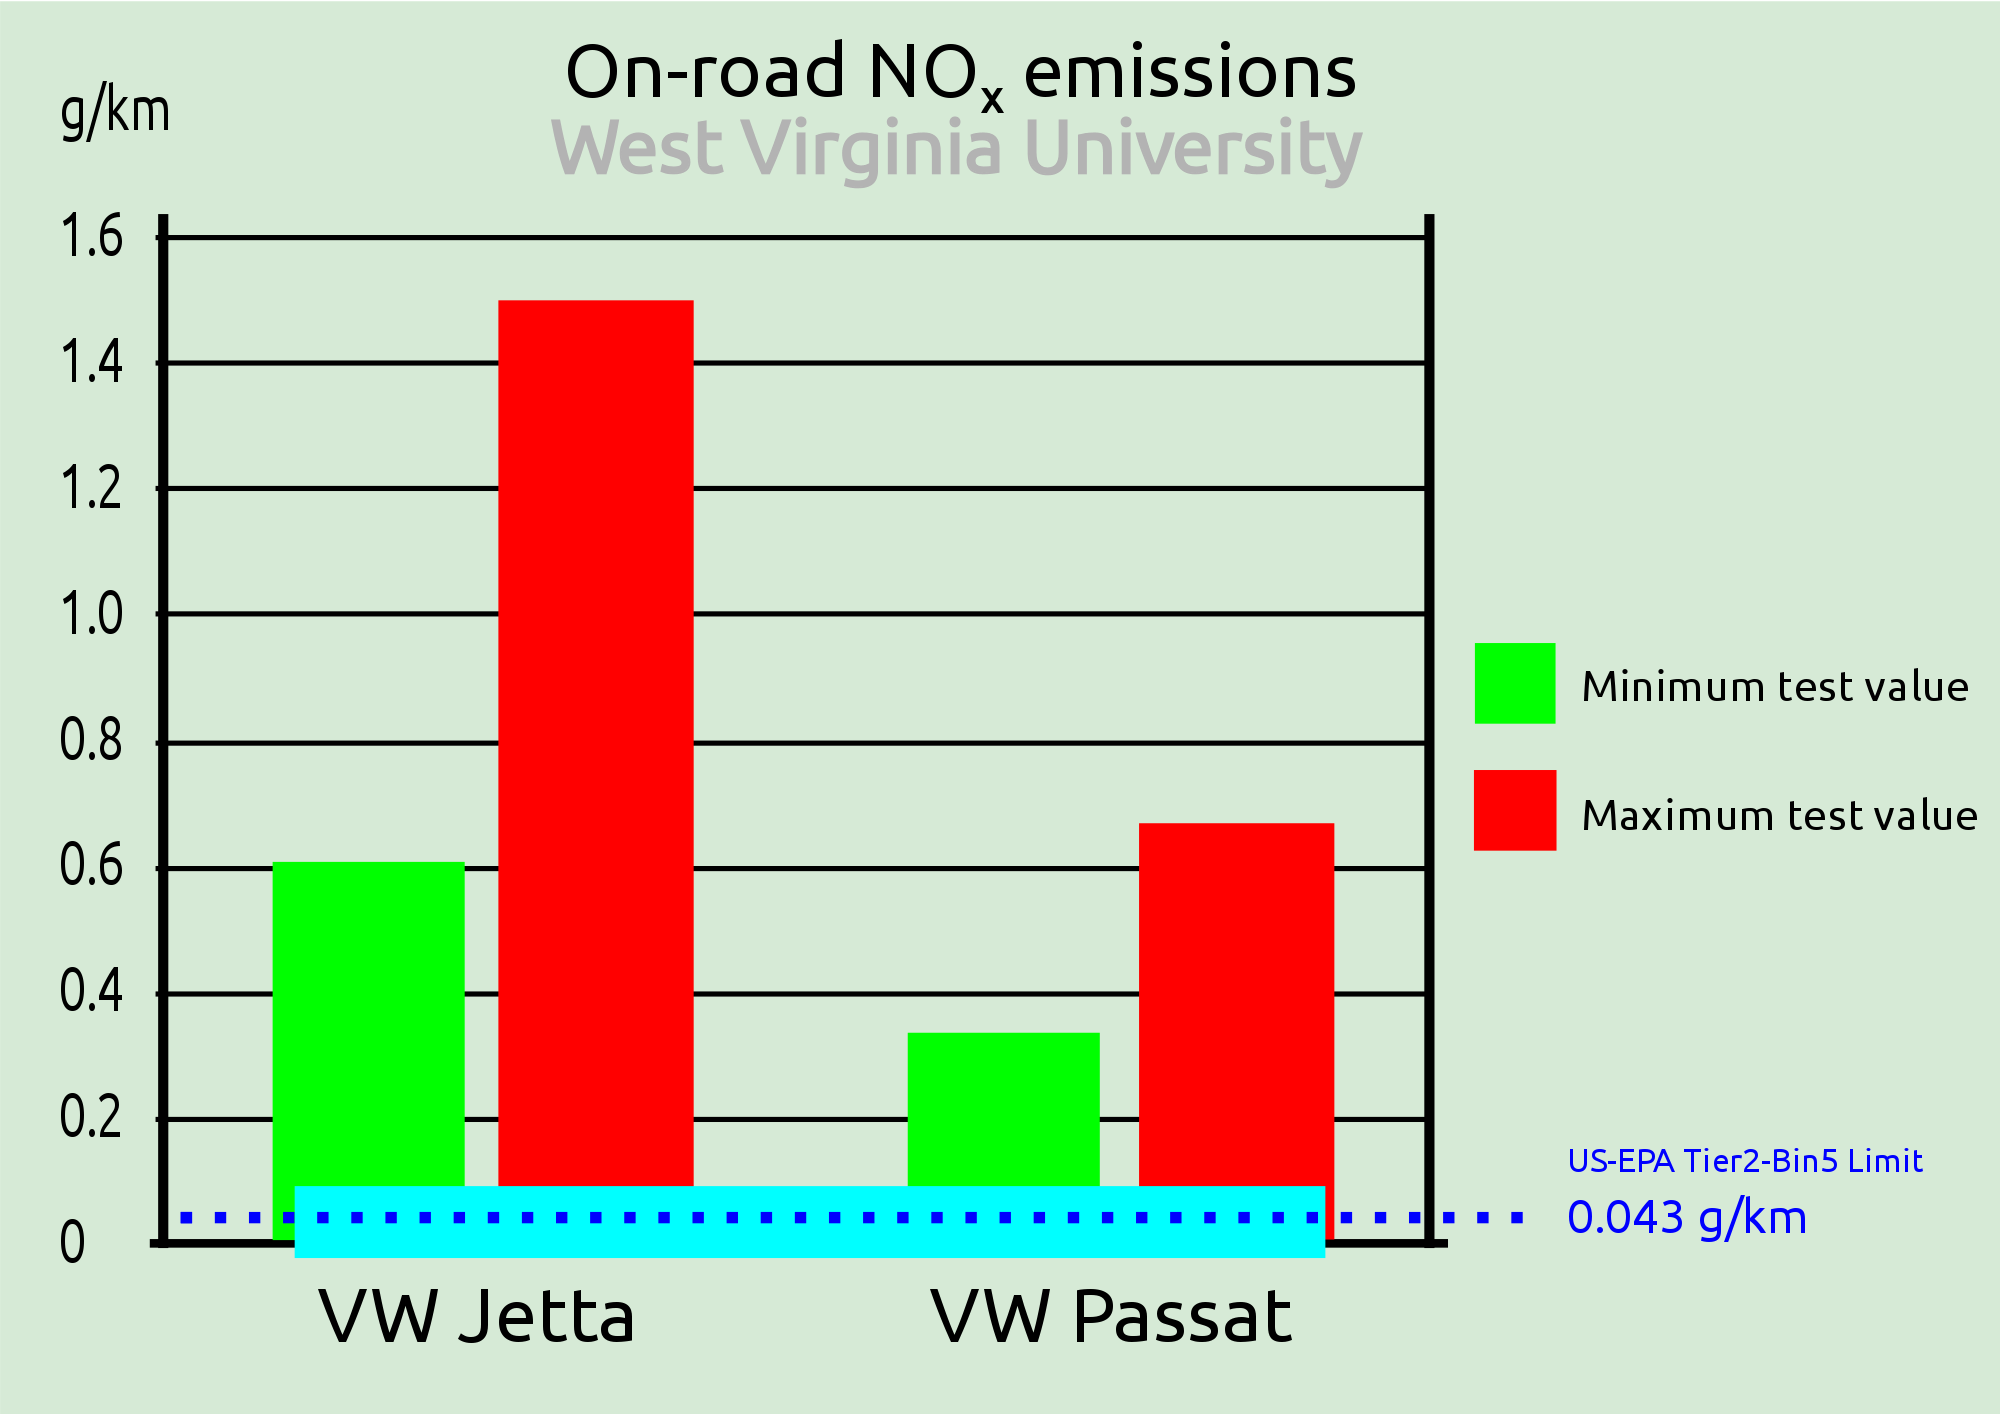 Co2 drawing smog. Volkswagen emissions scandal wikipedia